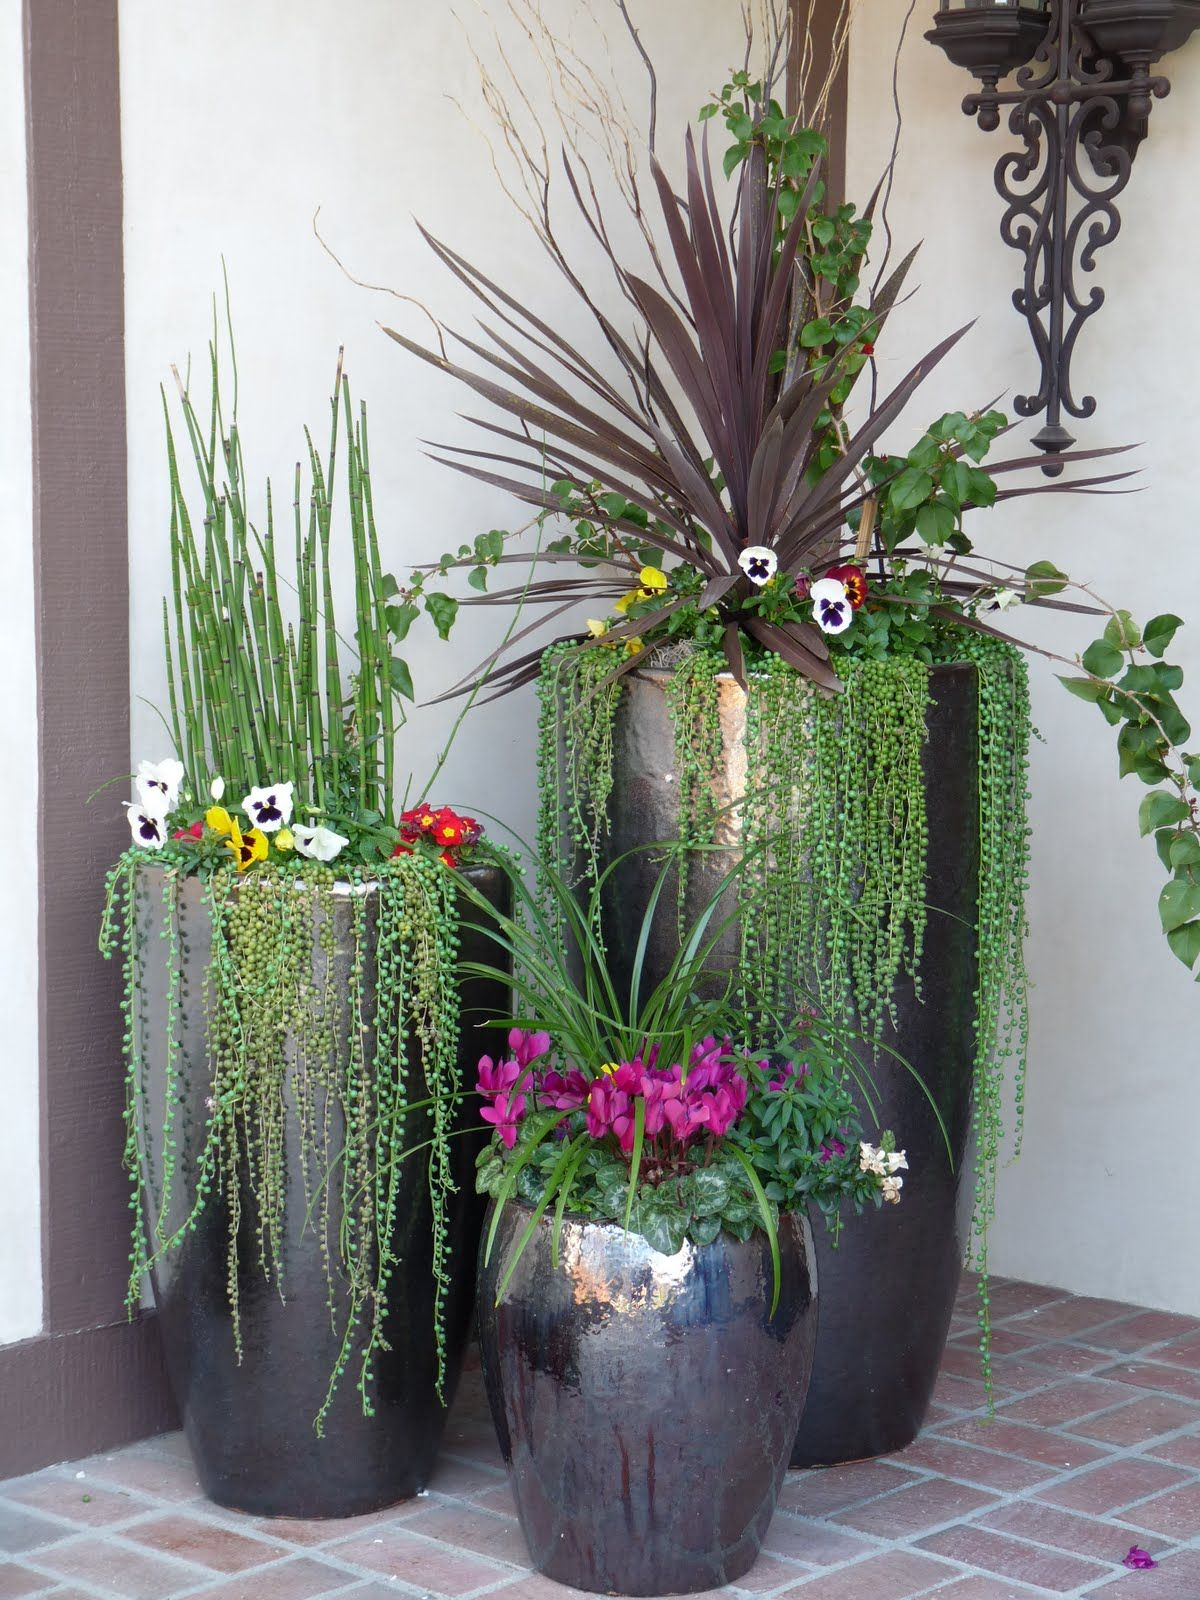 Plants Will Adorn Our Home Potted Plants Outdoor Ideas